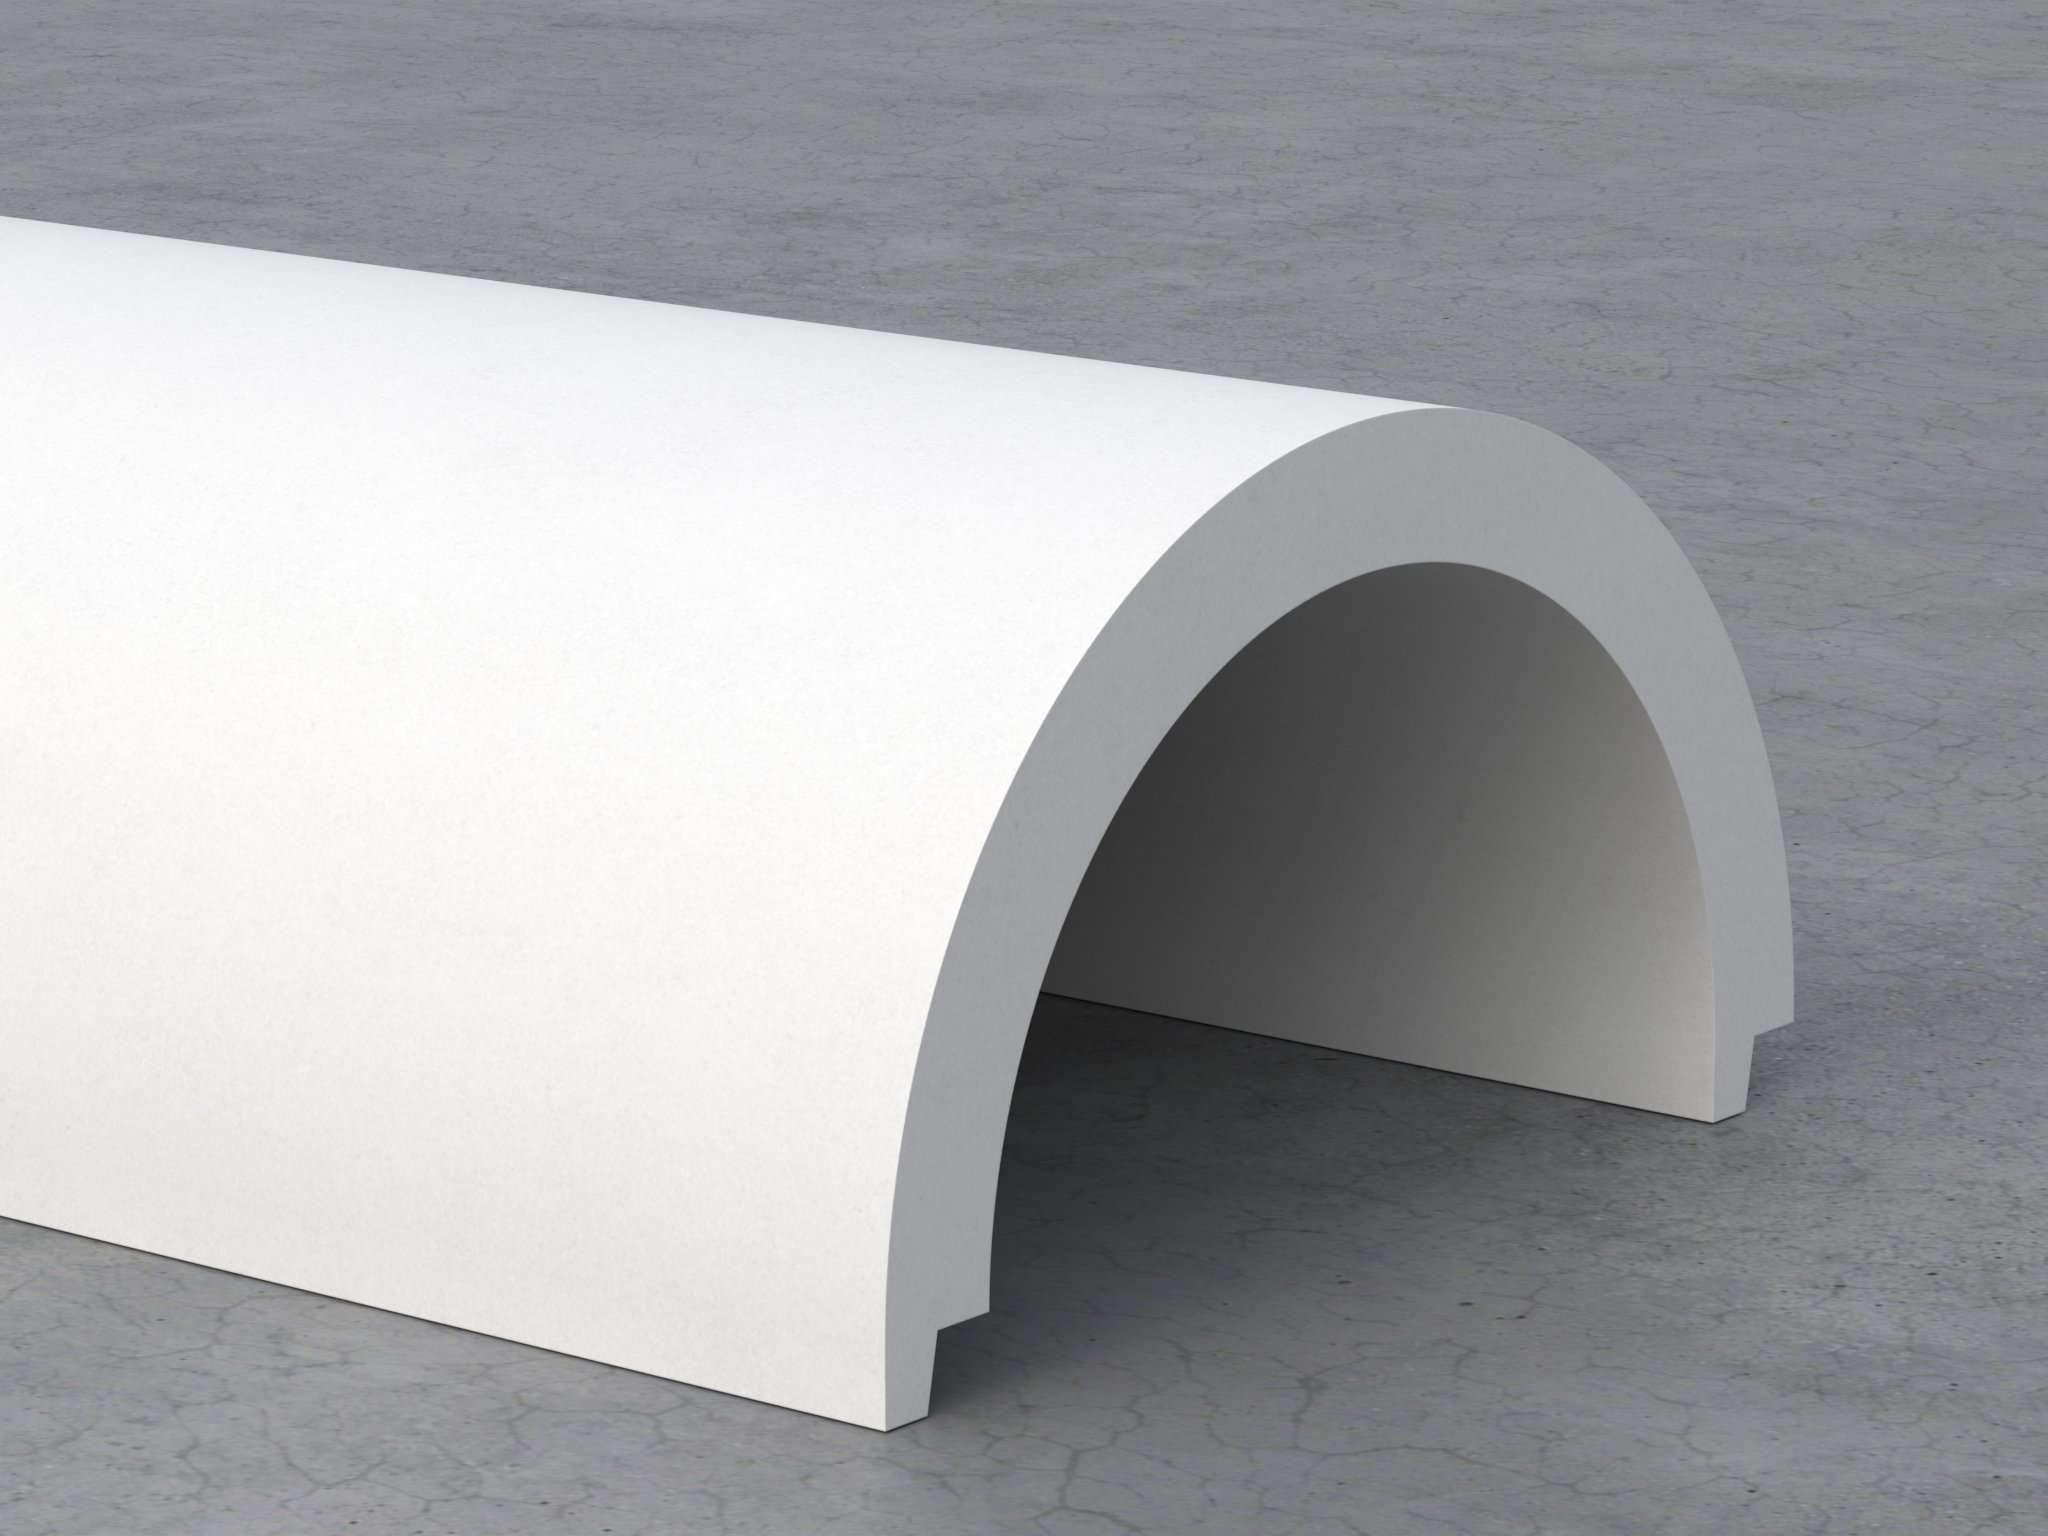 Geostaff gypsum plaster fire protection accessory for passive fire protection